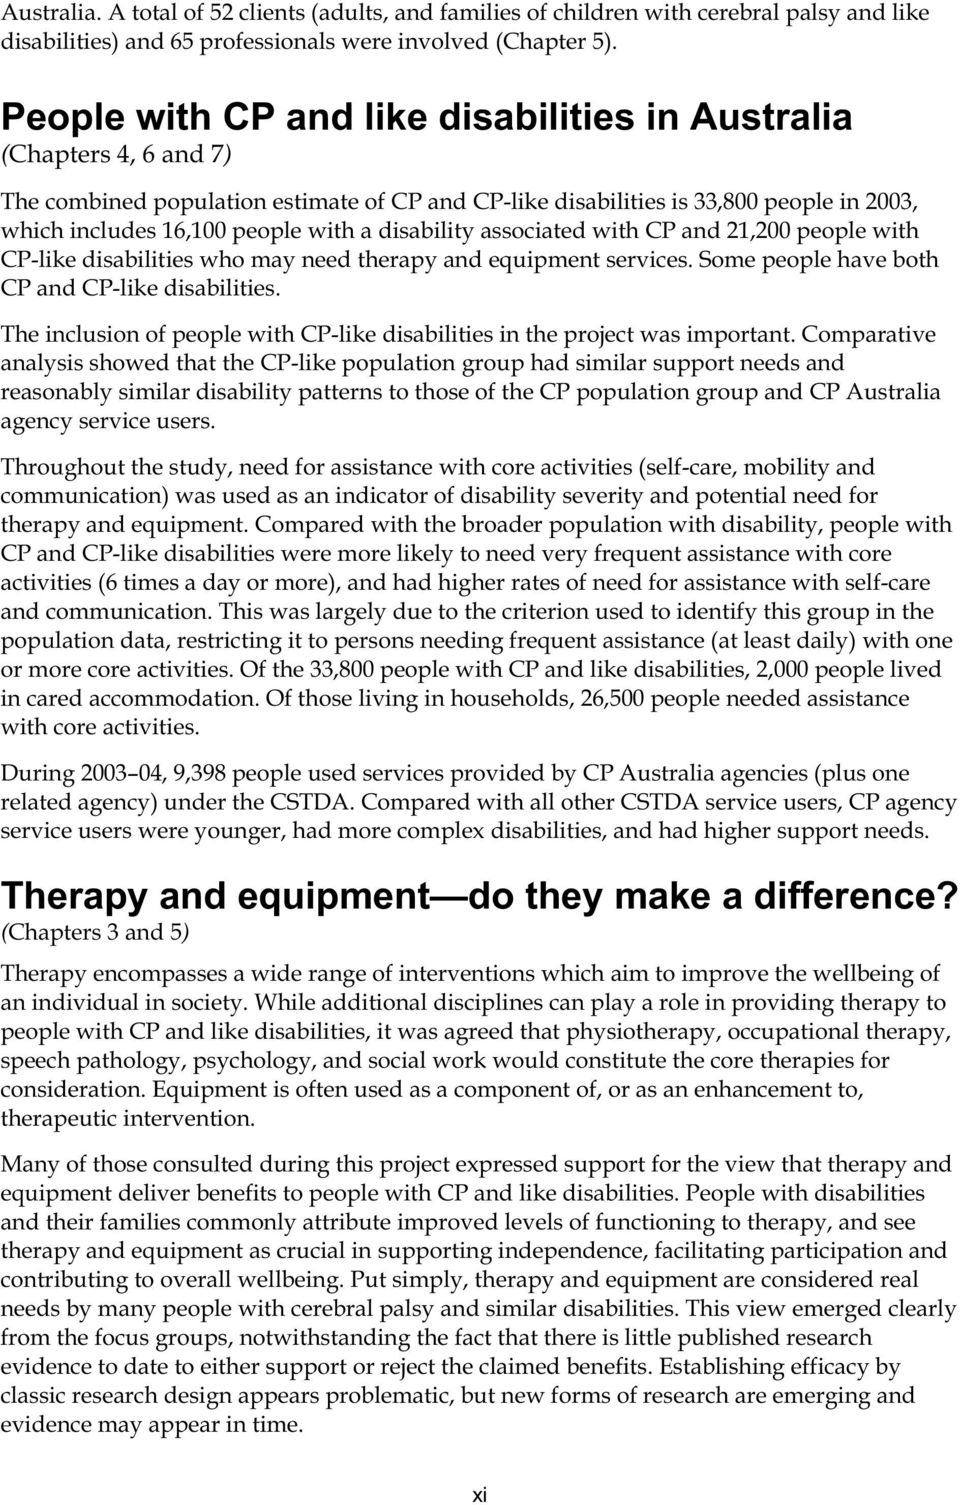 disability associated with CP and 21,200 people with CP-like disabilities who may need therapy and equipment services. Some people have both CP and CP-like disabilities.